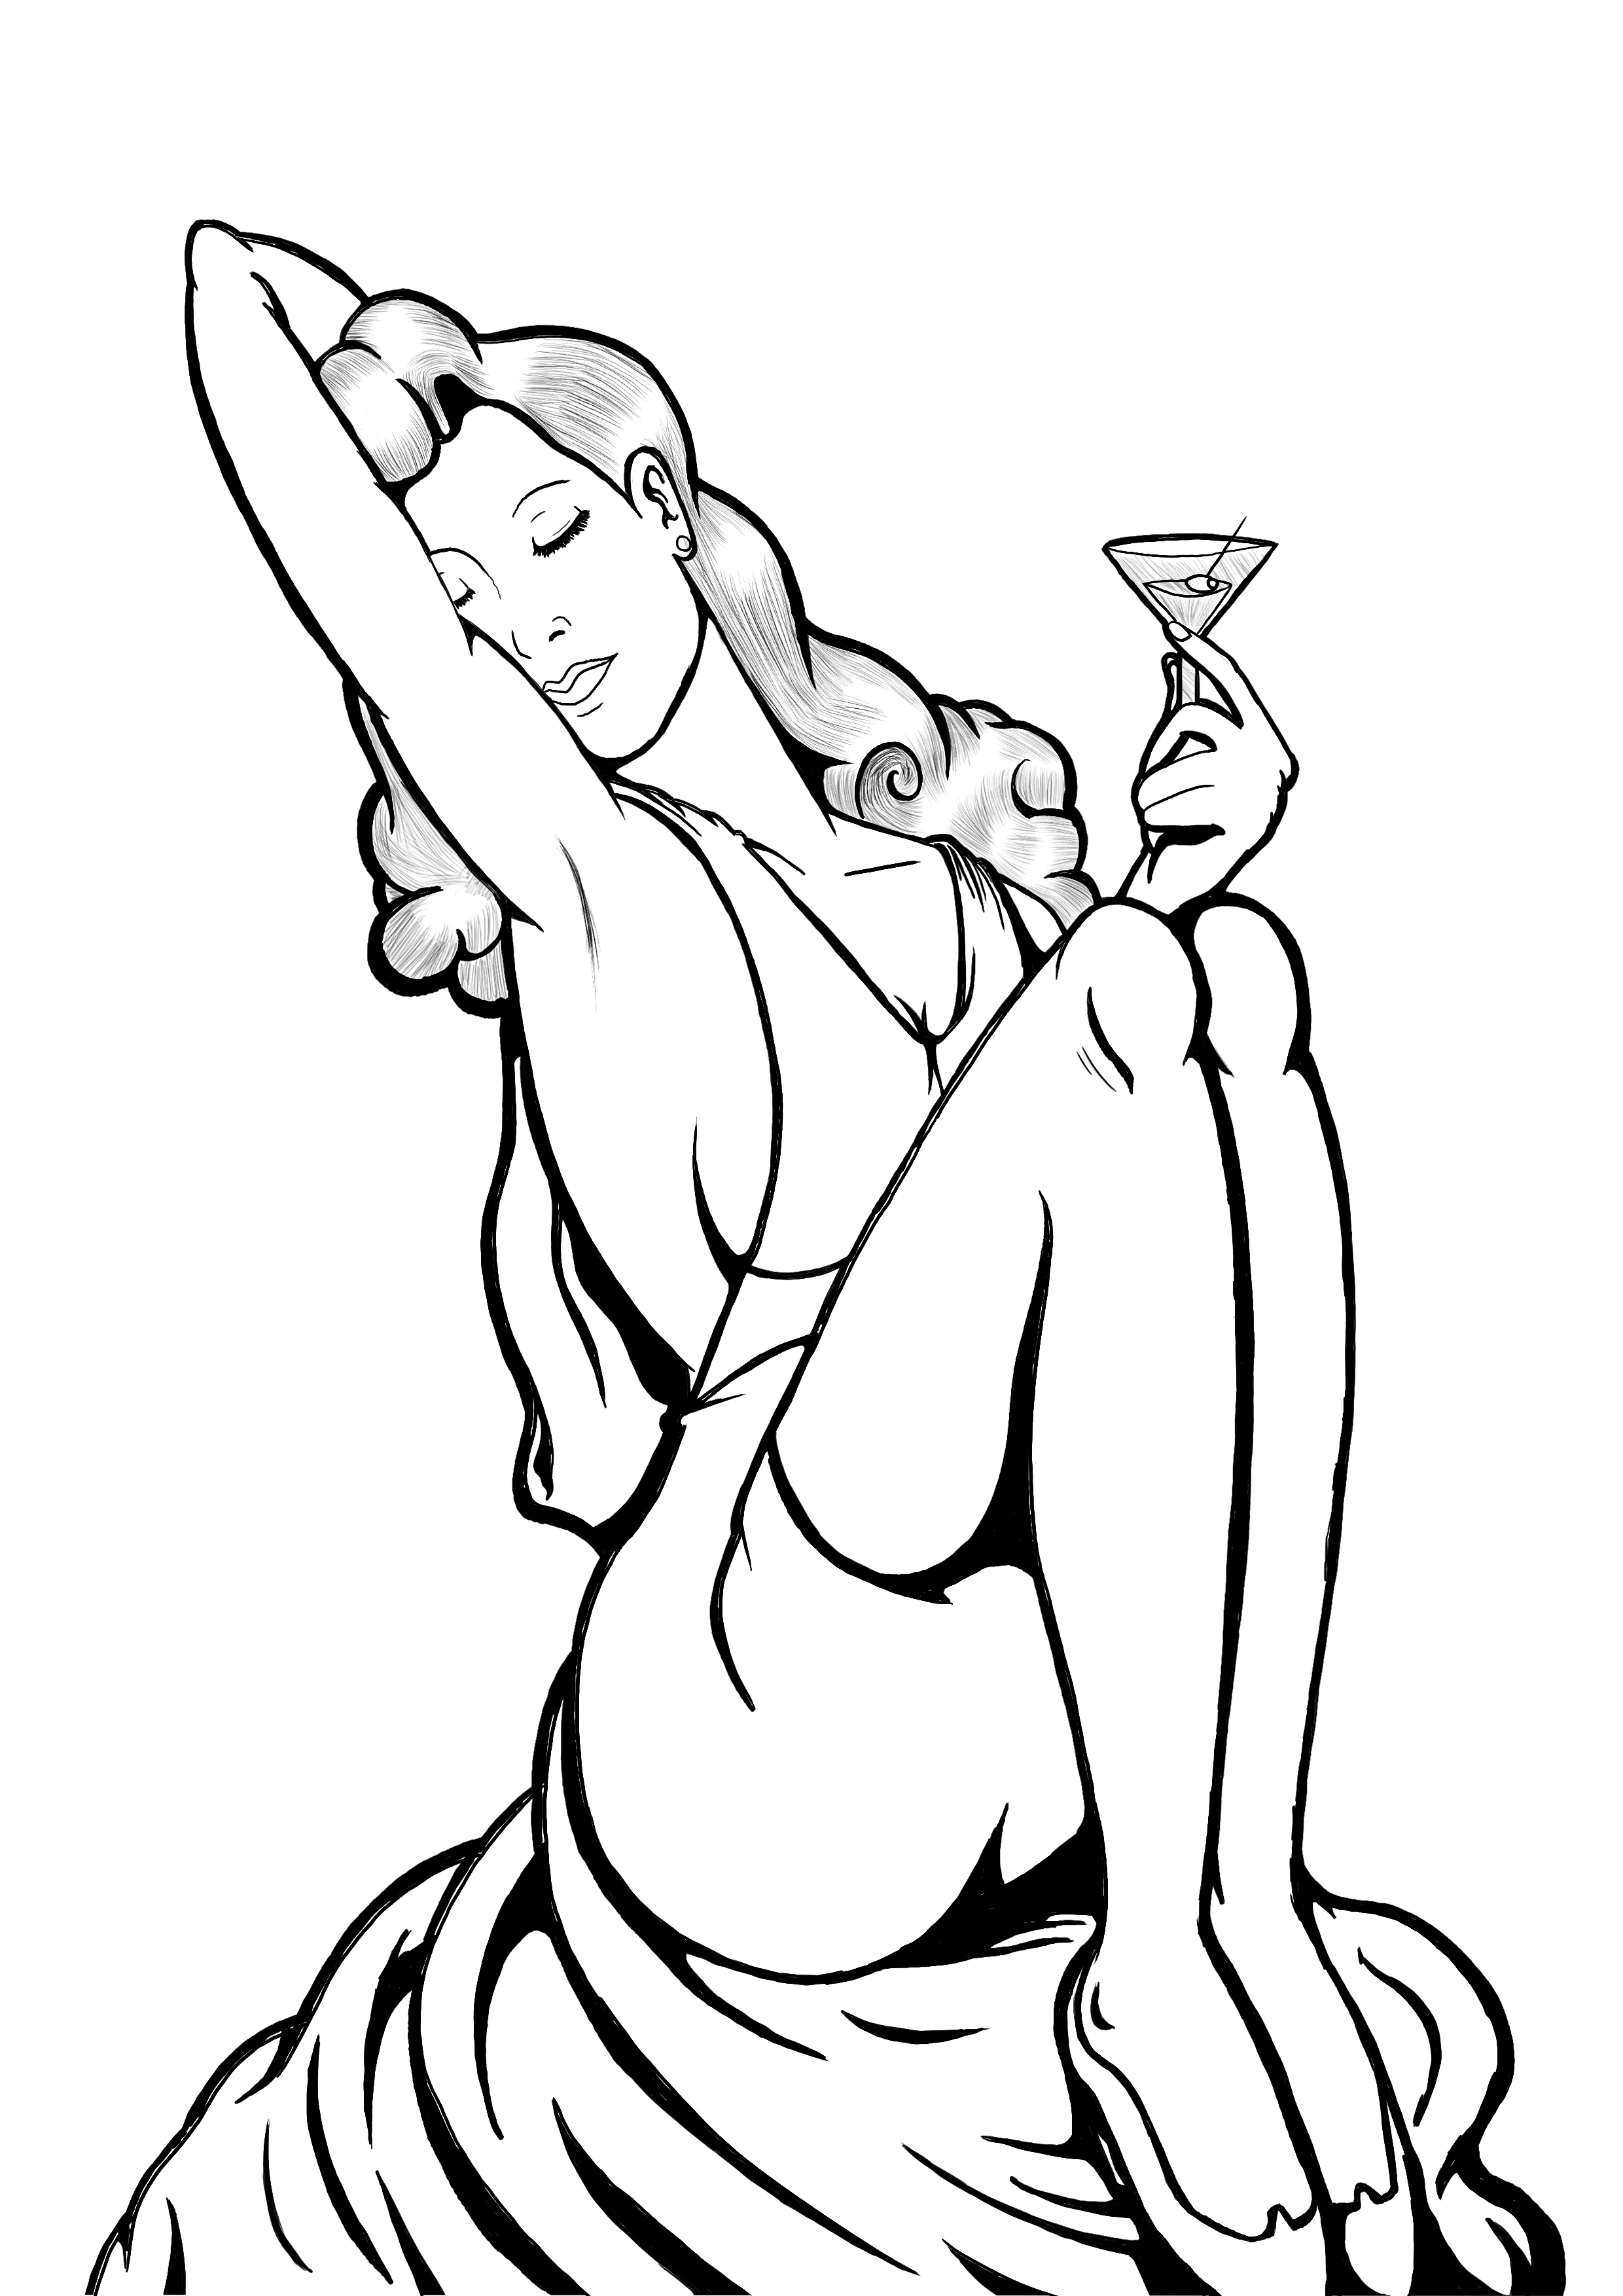 Pin Up Girl Drawing at GetDrawings.com | Free for personal use Pin ...